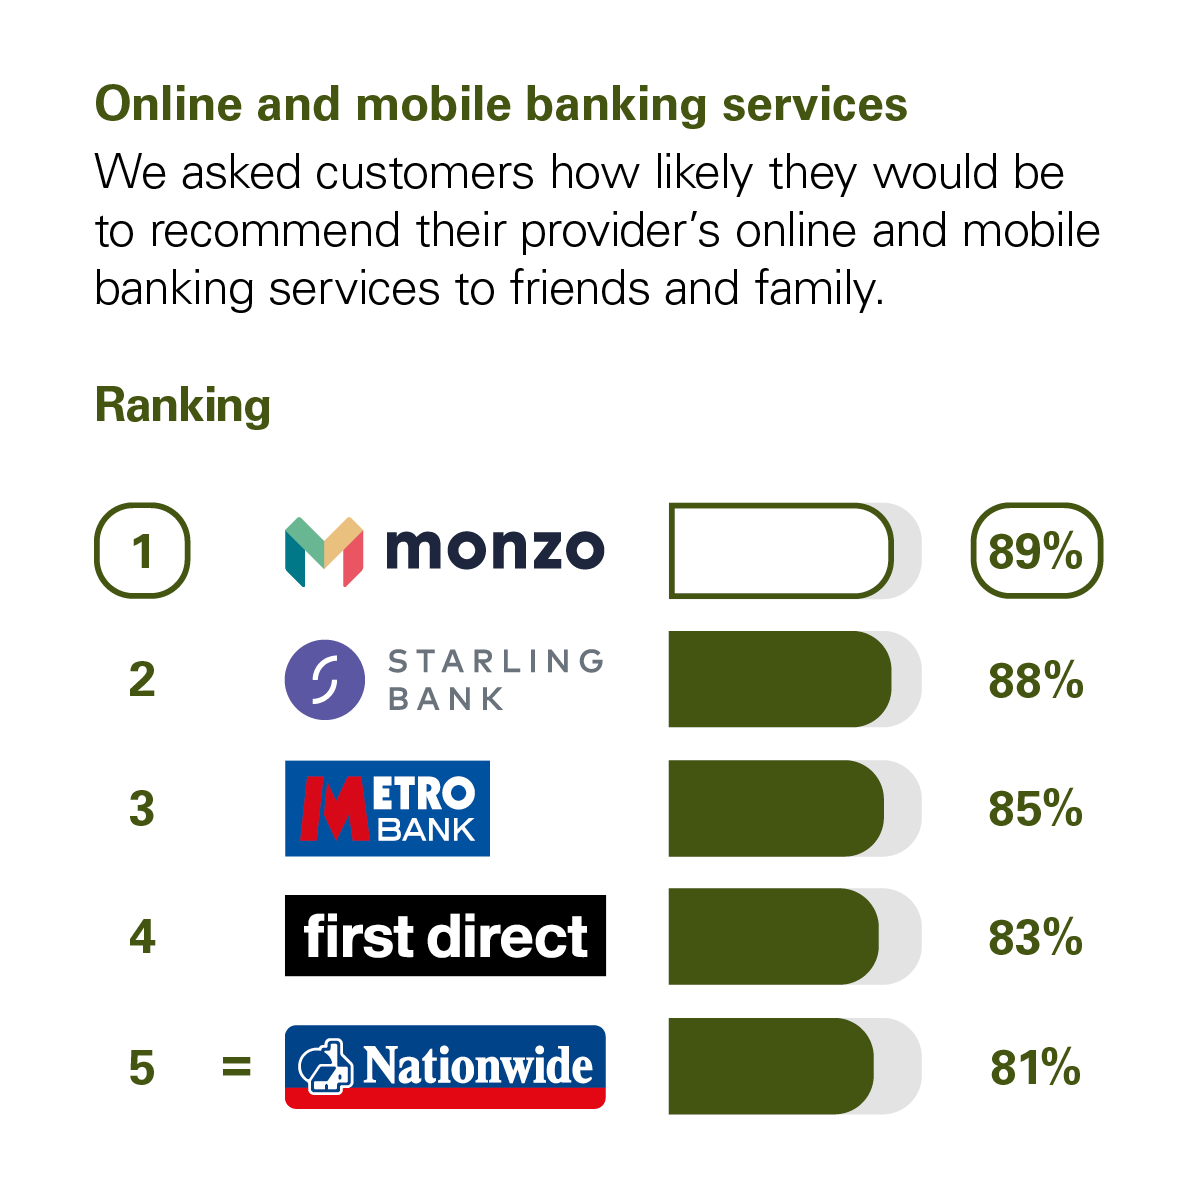 Graph showing the results of the CMA scoring of UK banks in the Online and Mobile Banking Services category. The CMA asked customers how likely they would be to recommend their provider's online and mobile banking services to friends and family. The rankings with percentage scores are: 1 Monzo, with 89%. 2 Starling, with 88%. 3 Metro Bank, 85%. 4 First Direct, with 83%. 5 Nationwide, with 81%.